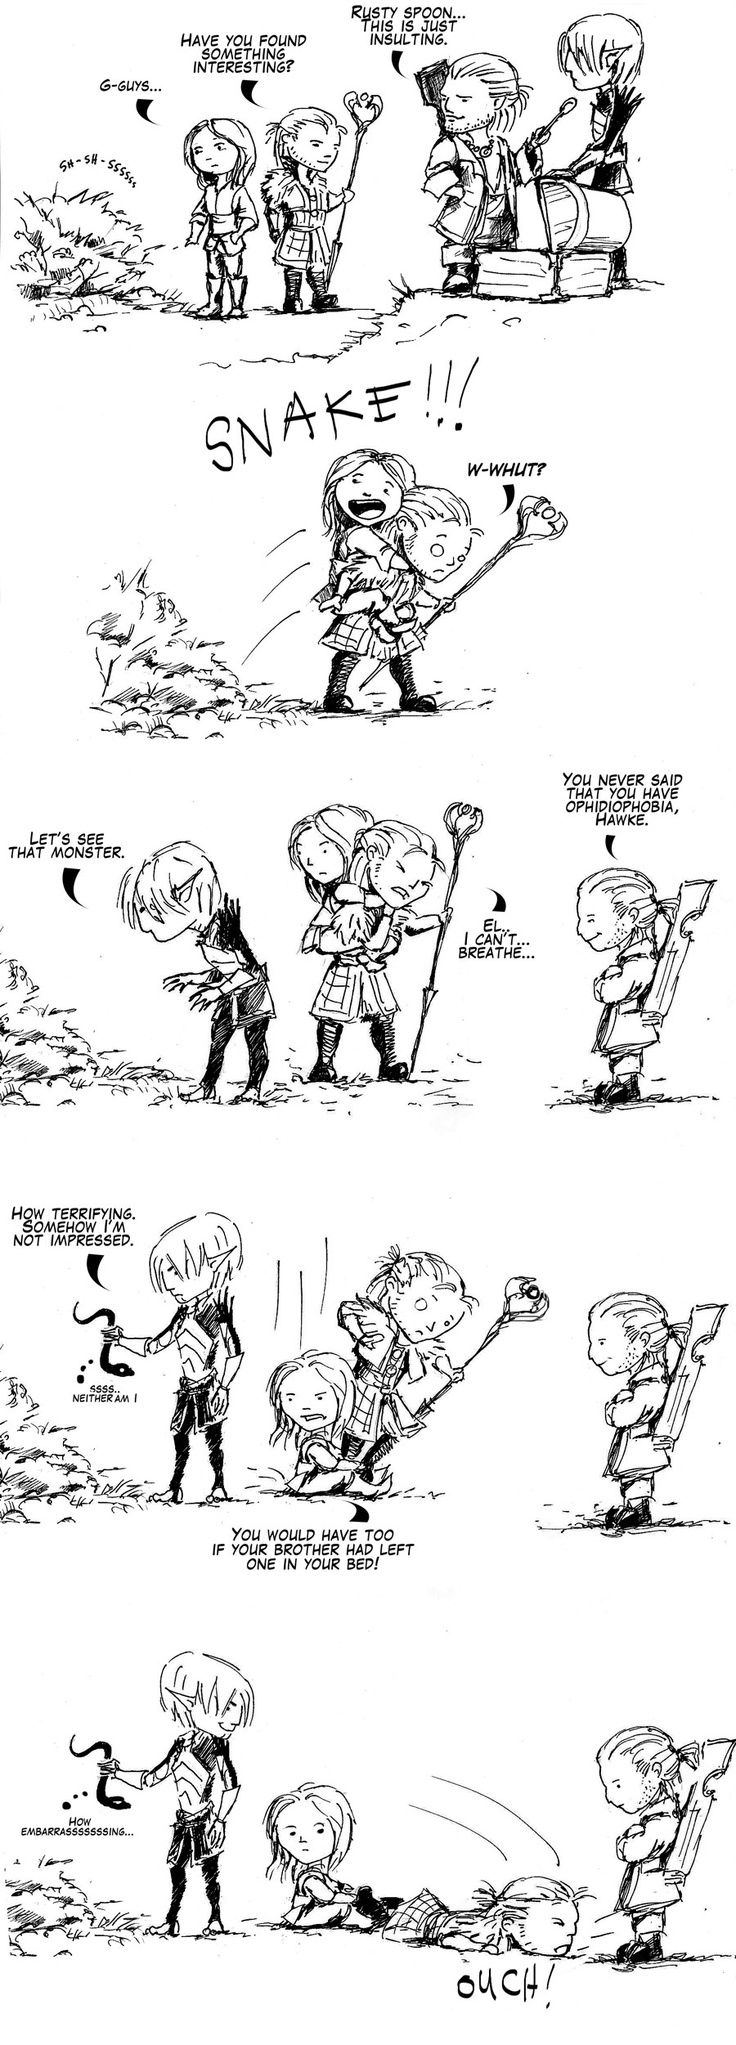 For all of my friend who enjoy Dragon Age 2